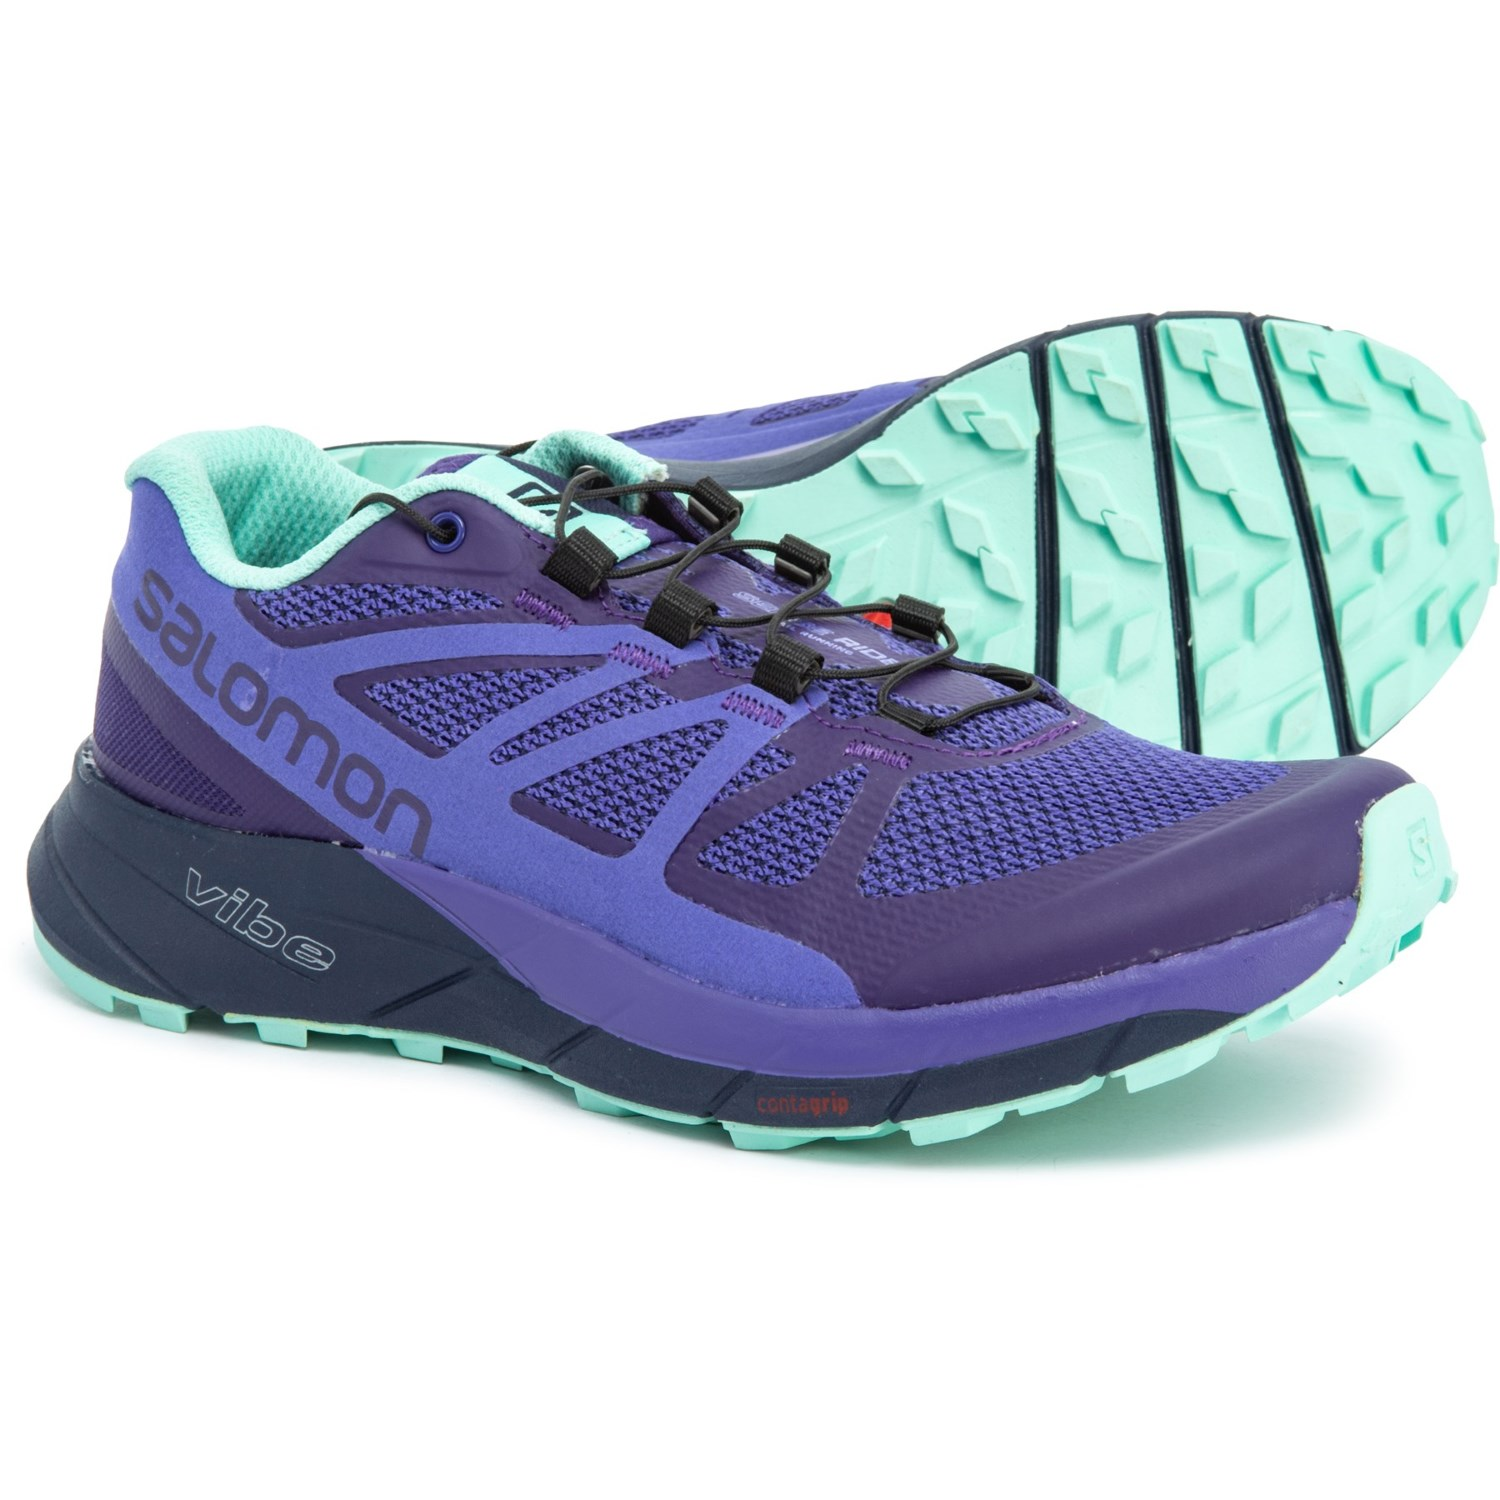 detailed look 8a6c0 f5746 Salomon Sense Ride Trail Running Shoes (For Women) in Parachute  Purple Purple Opulence